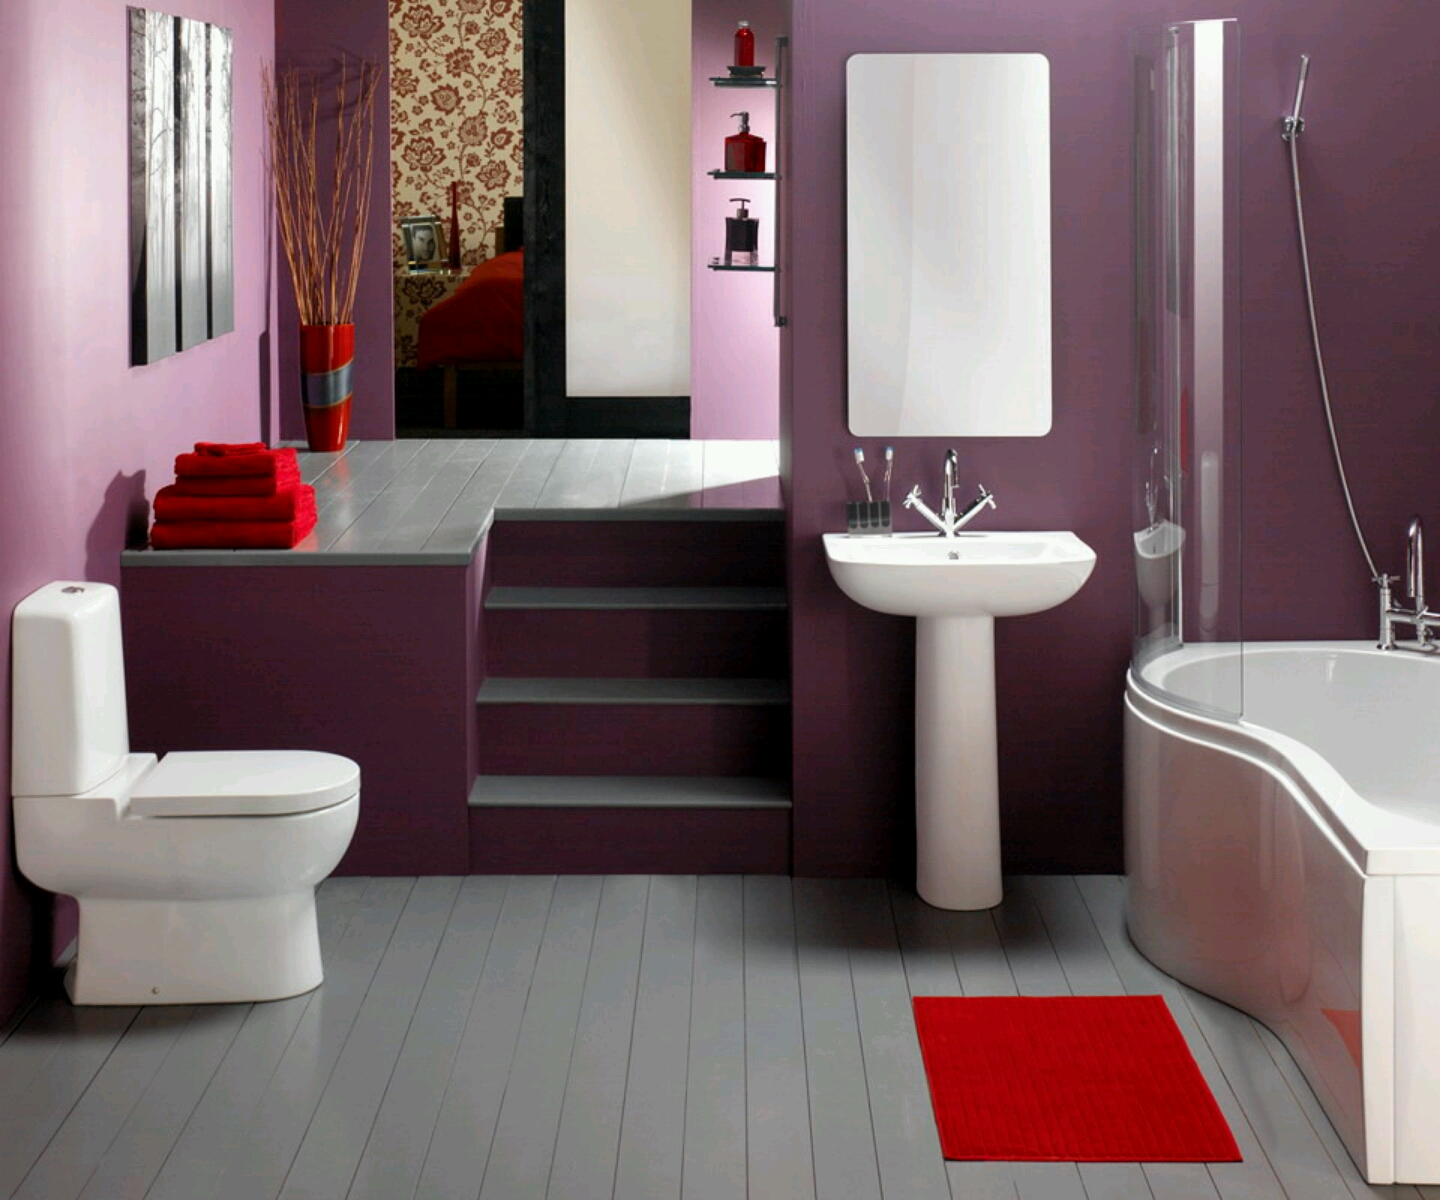 New home designs latest luxury modern bathrooms designs for Bathroom design ideas modern